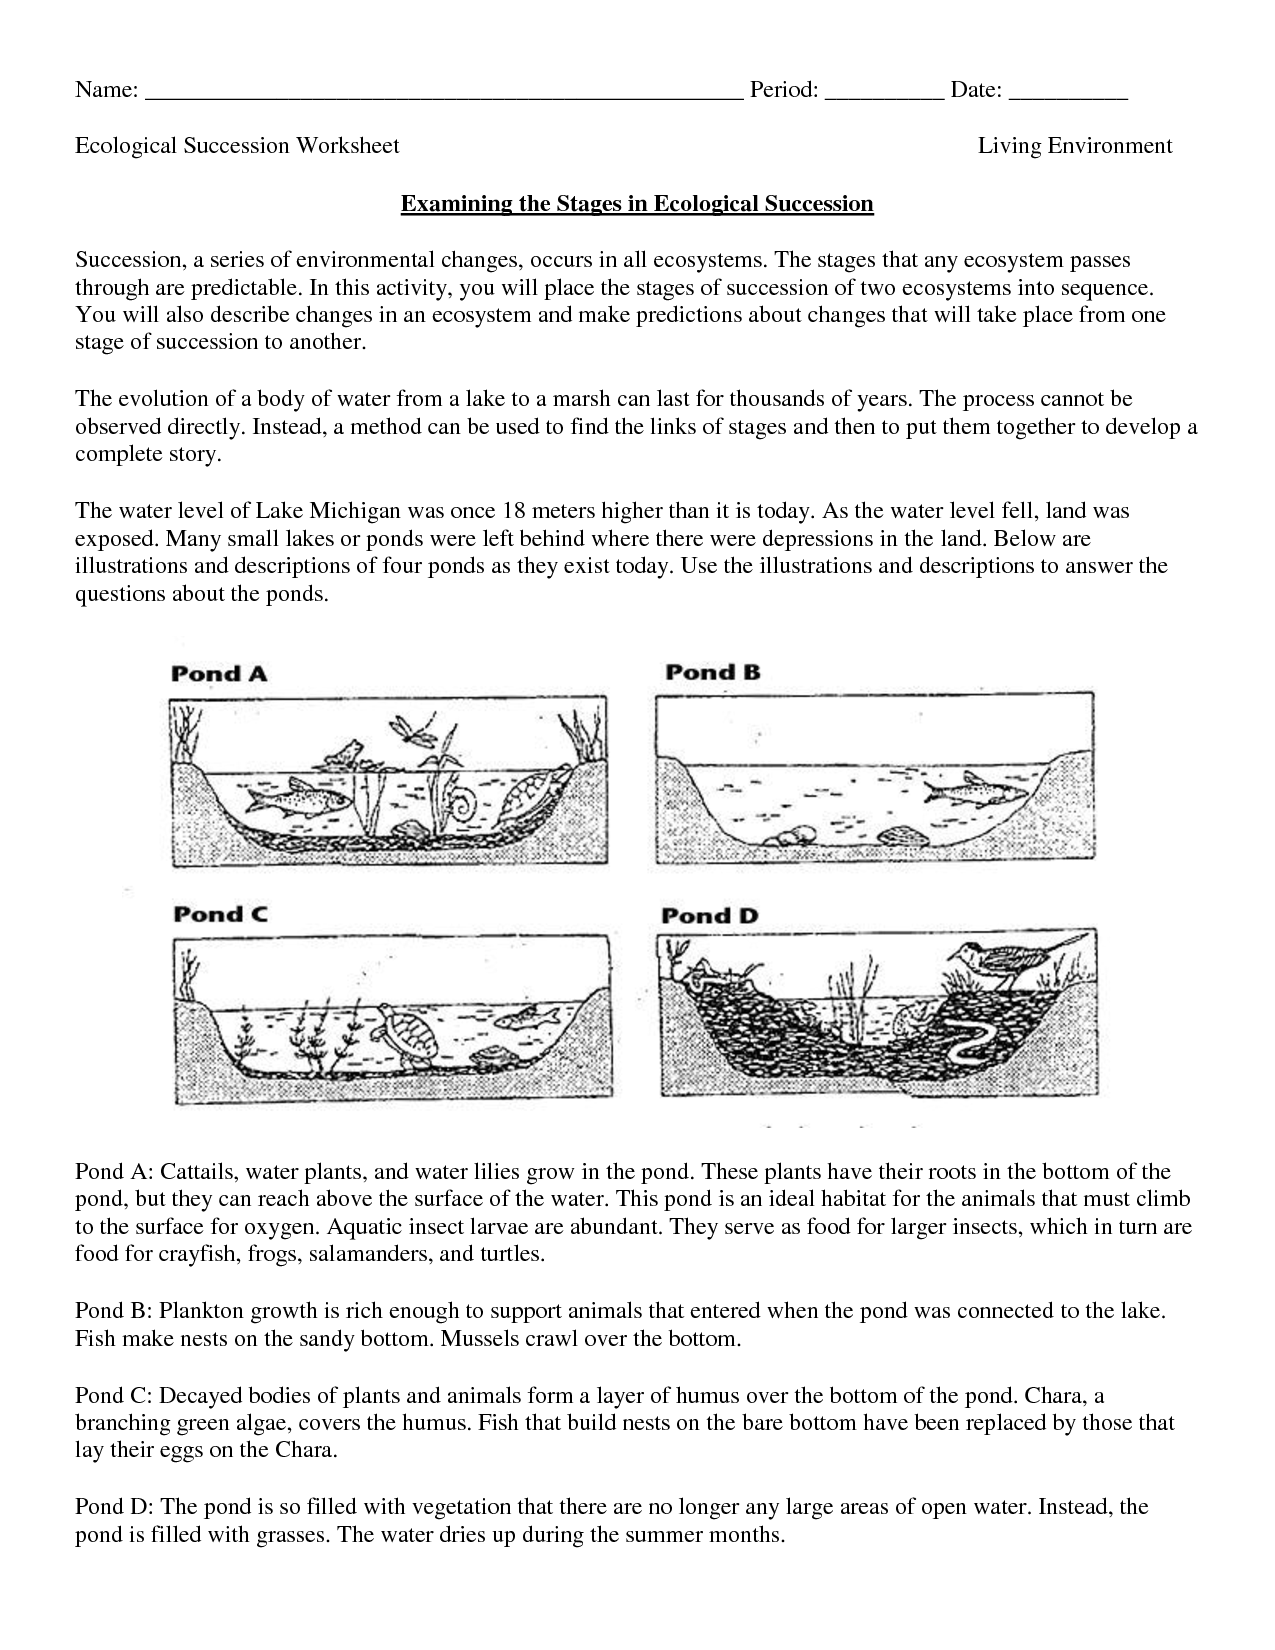 Printables Of Ecological Succession Worksheet